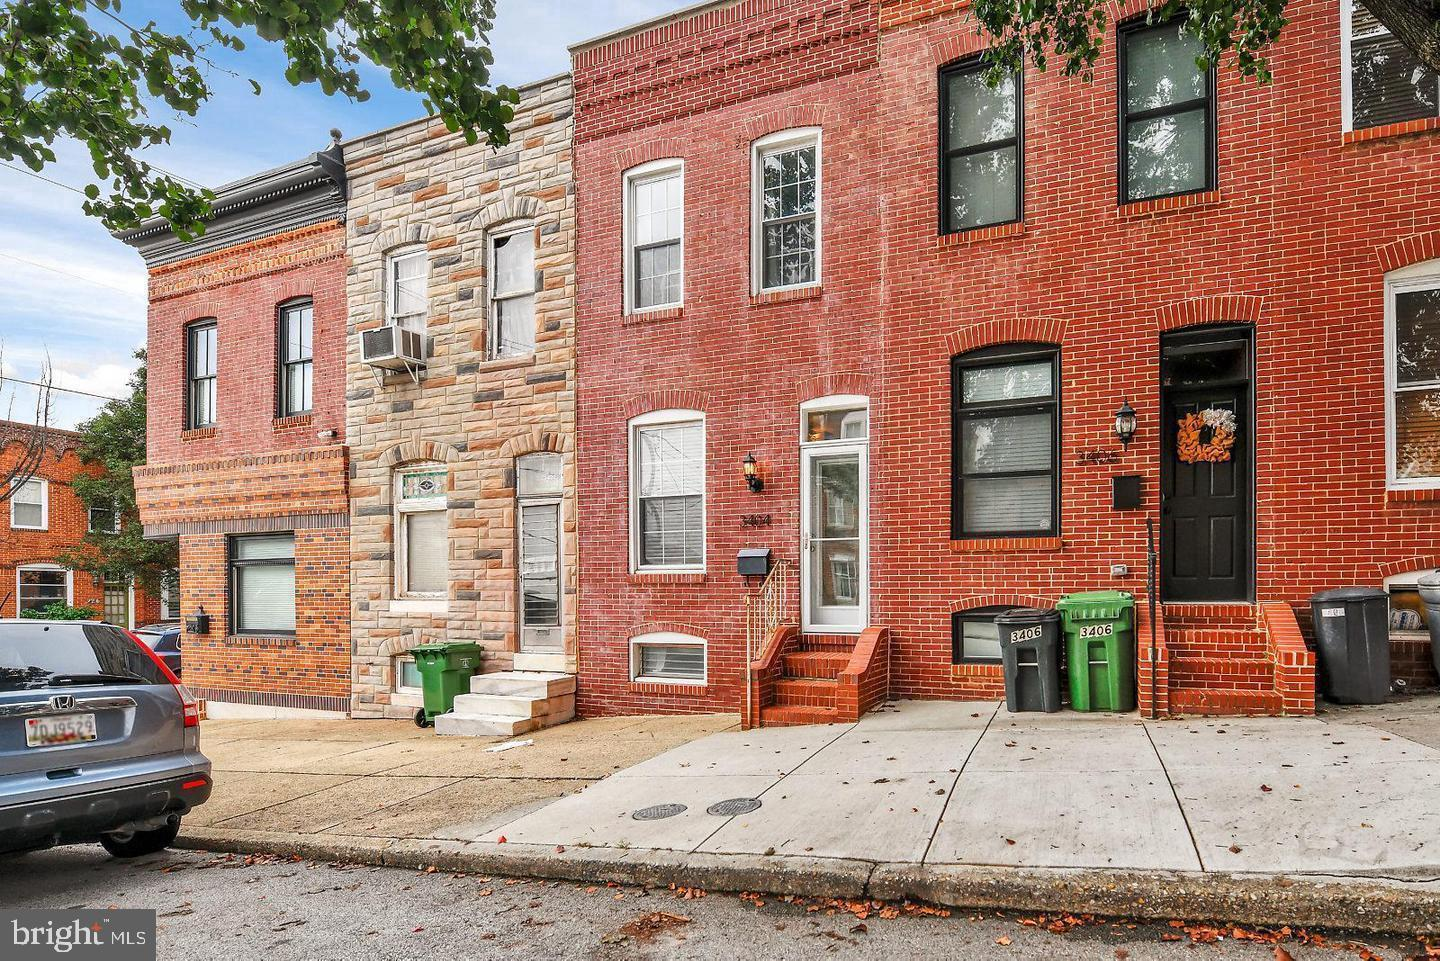 Charming 2 BR 2 BA Row home located in prime Canton Location.  Walking distance to Canton Square, Canton Crossing, and Brewers Hill! Updated kitchen (2012), upper bathroom (2017), roof and HWH (2018), with original hardwood floors and exposed brick throughout main level. Large walk-in closet with shelving conveys.  Finished lower level and parking pad.